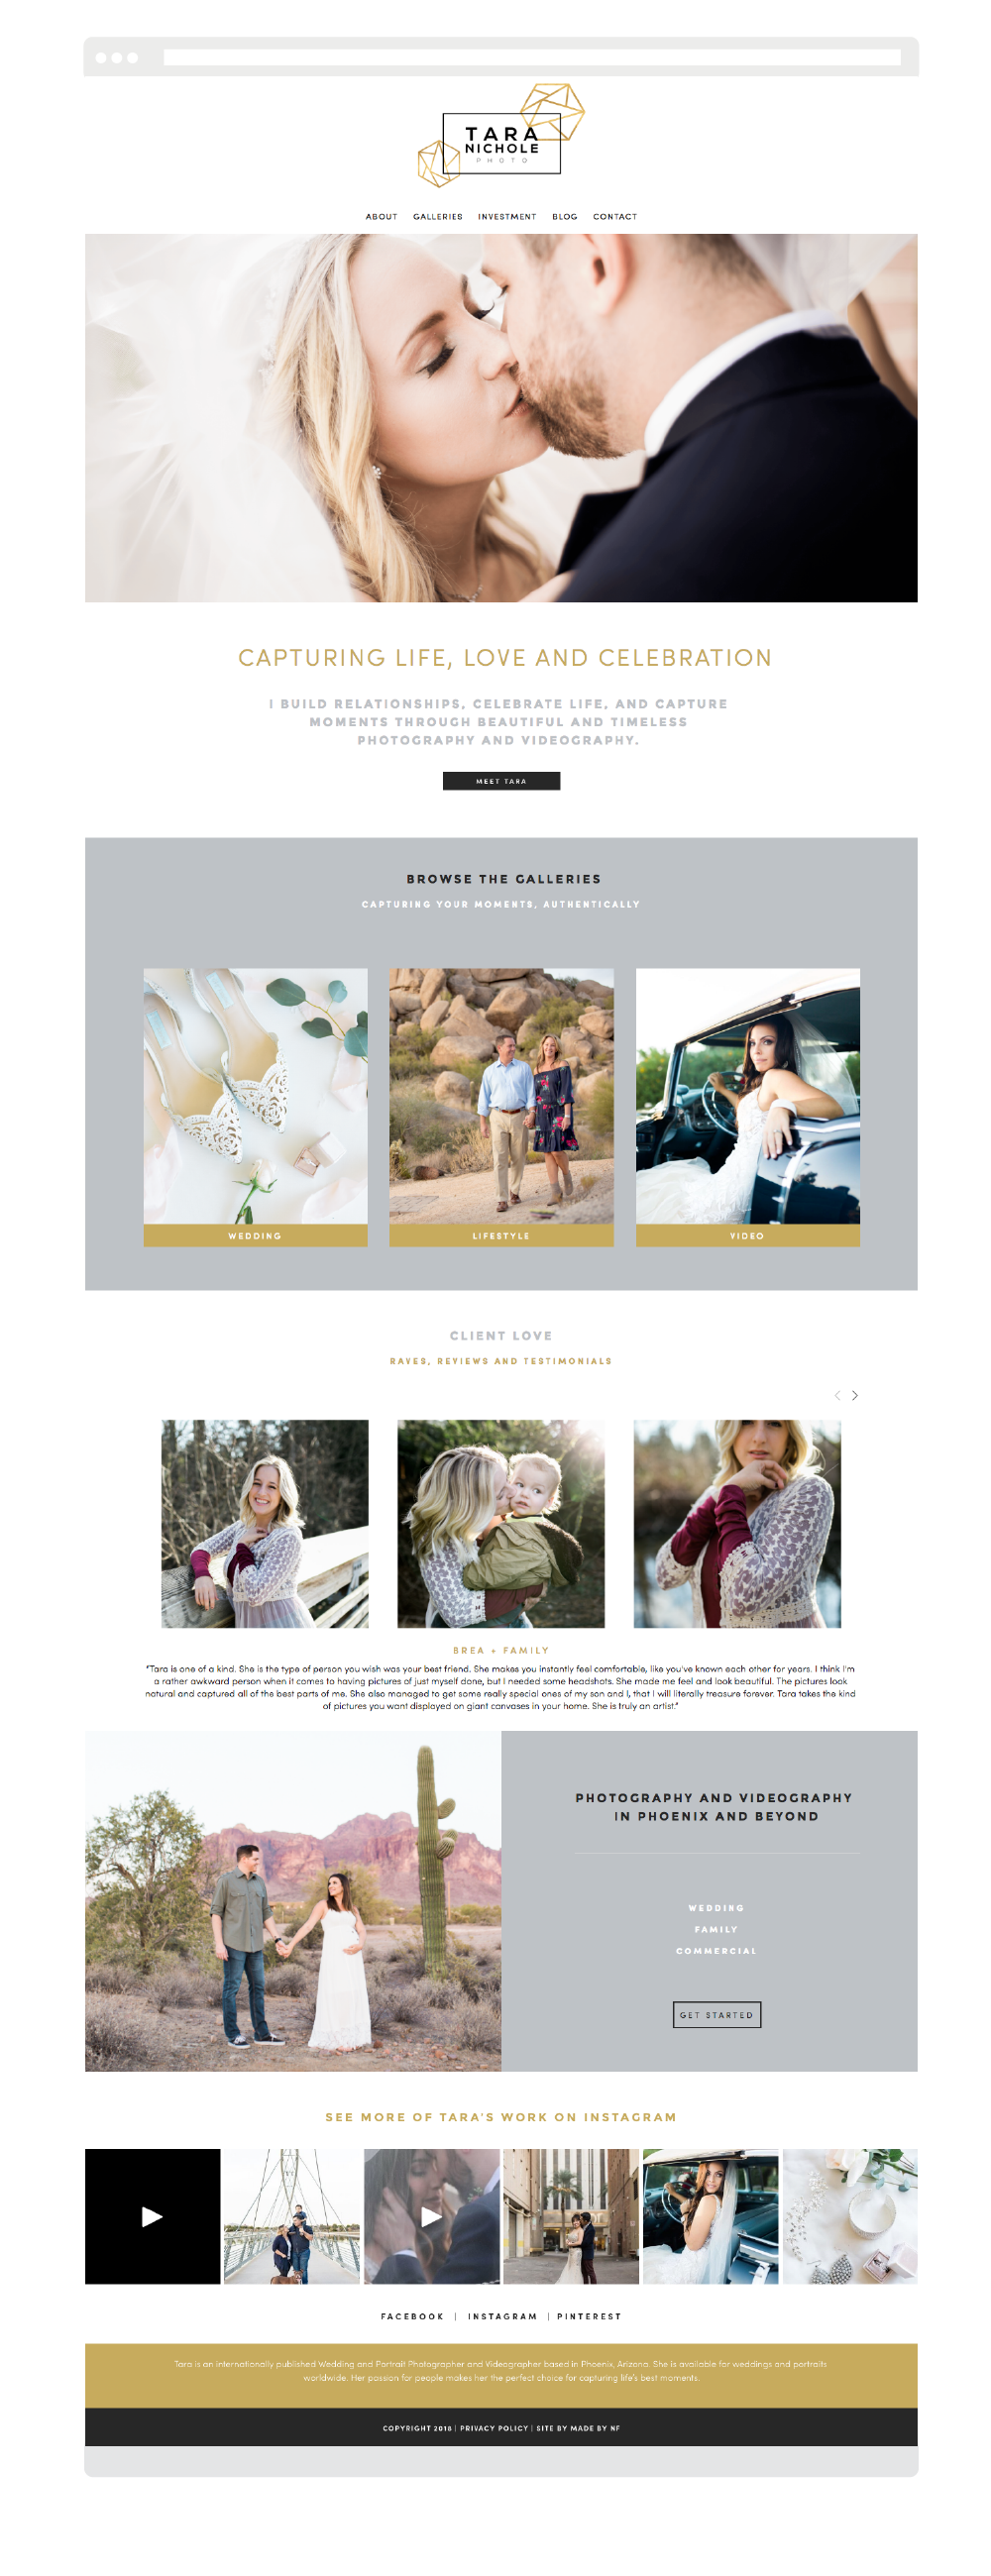 Custom Squarespace Design for Wedding Photographer - Wedding Photographer Squarespace Website.png